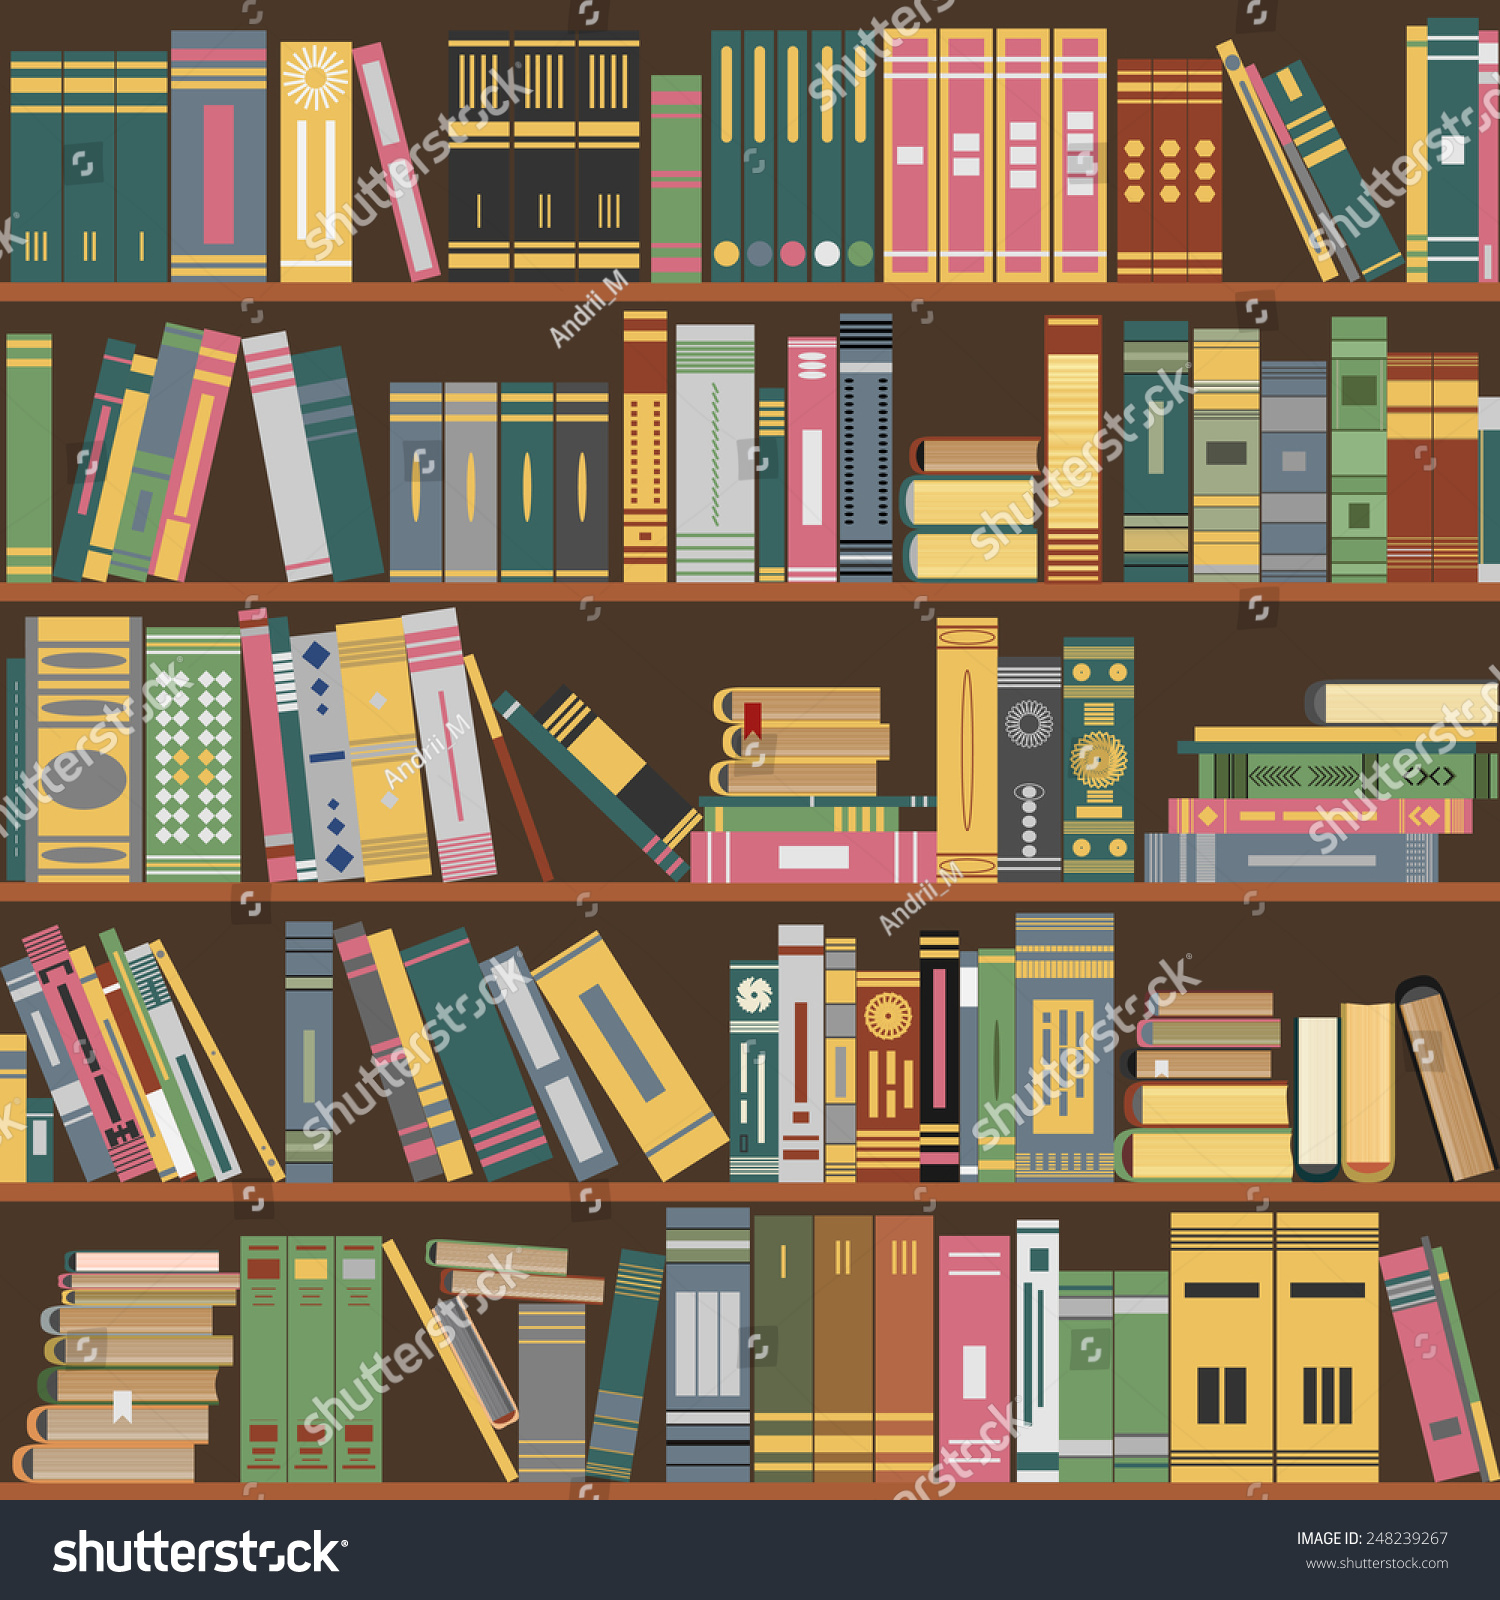 Books Shelves library bookshelf books on shelves library stock vector 248239267